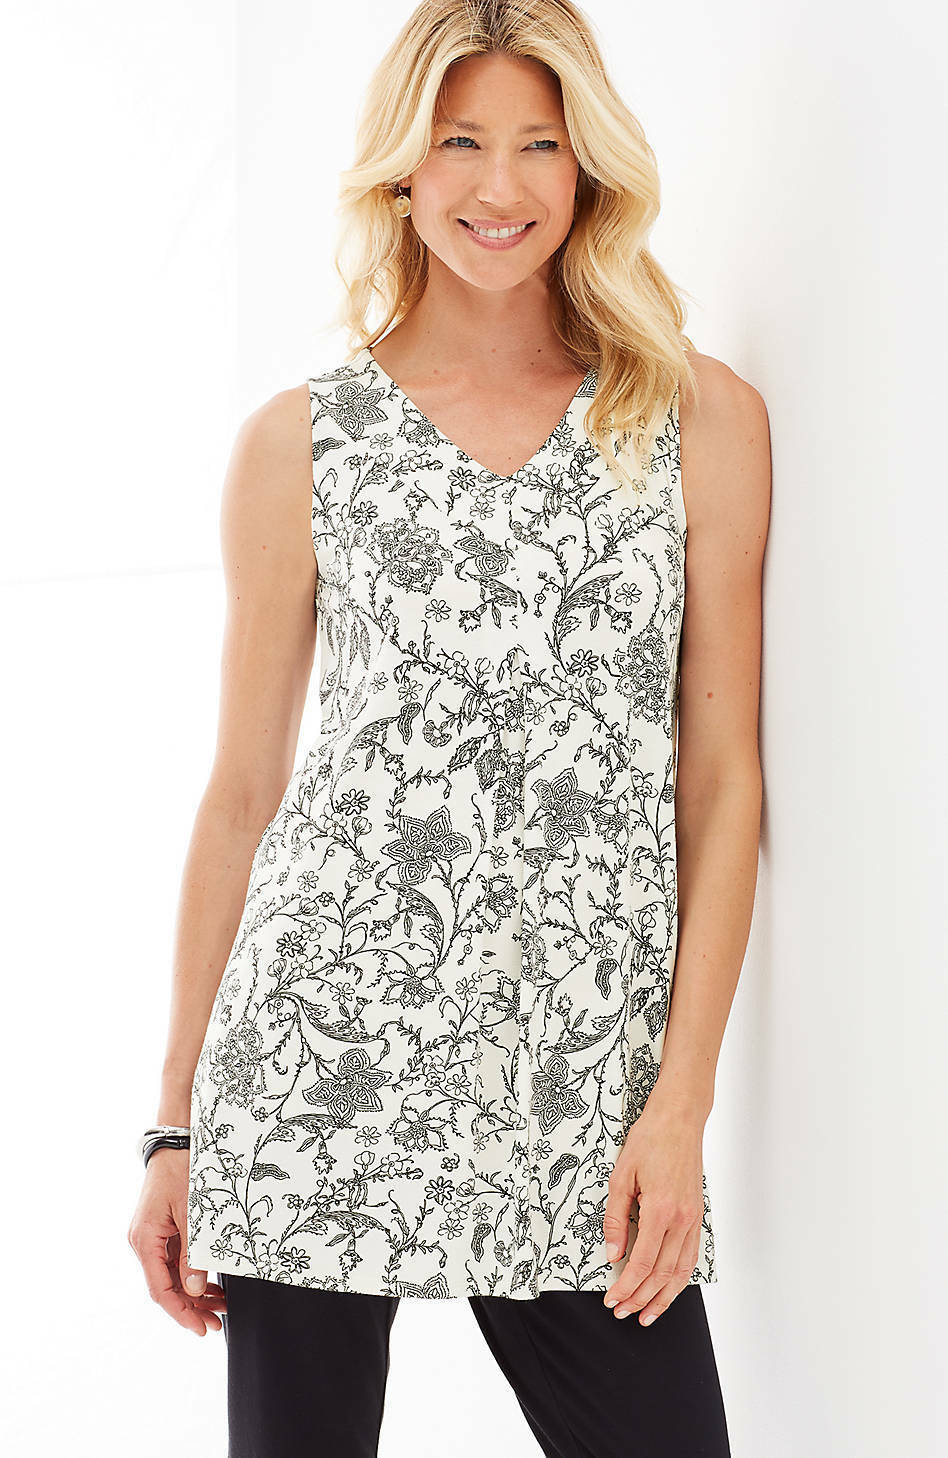 J. Jill - S - Stylish Cream Nouveau Floral  Wearever V-Neck Sleeveless Tunic